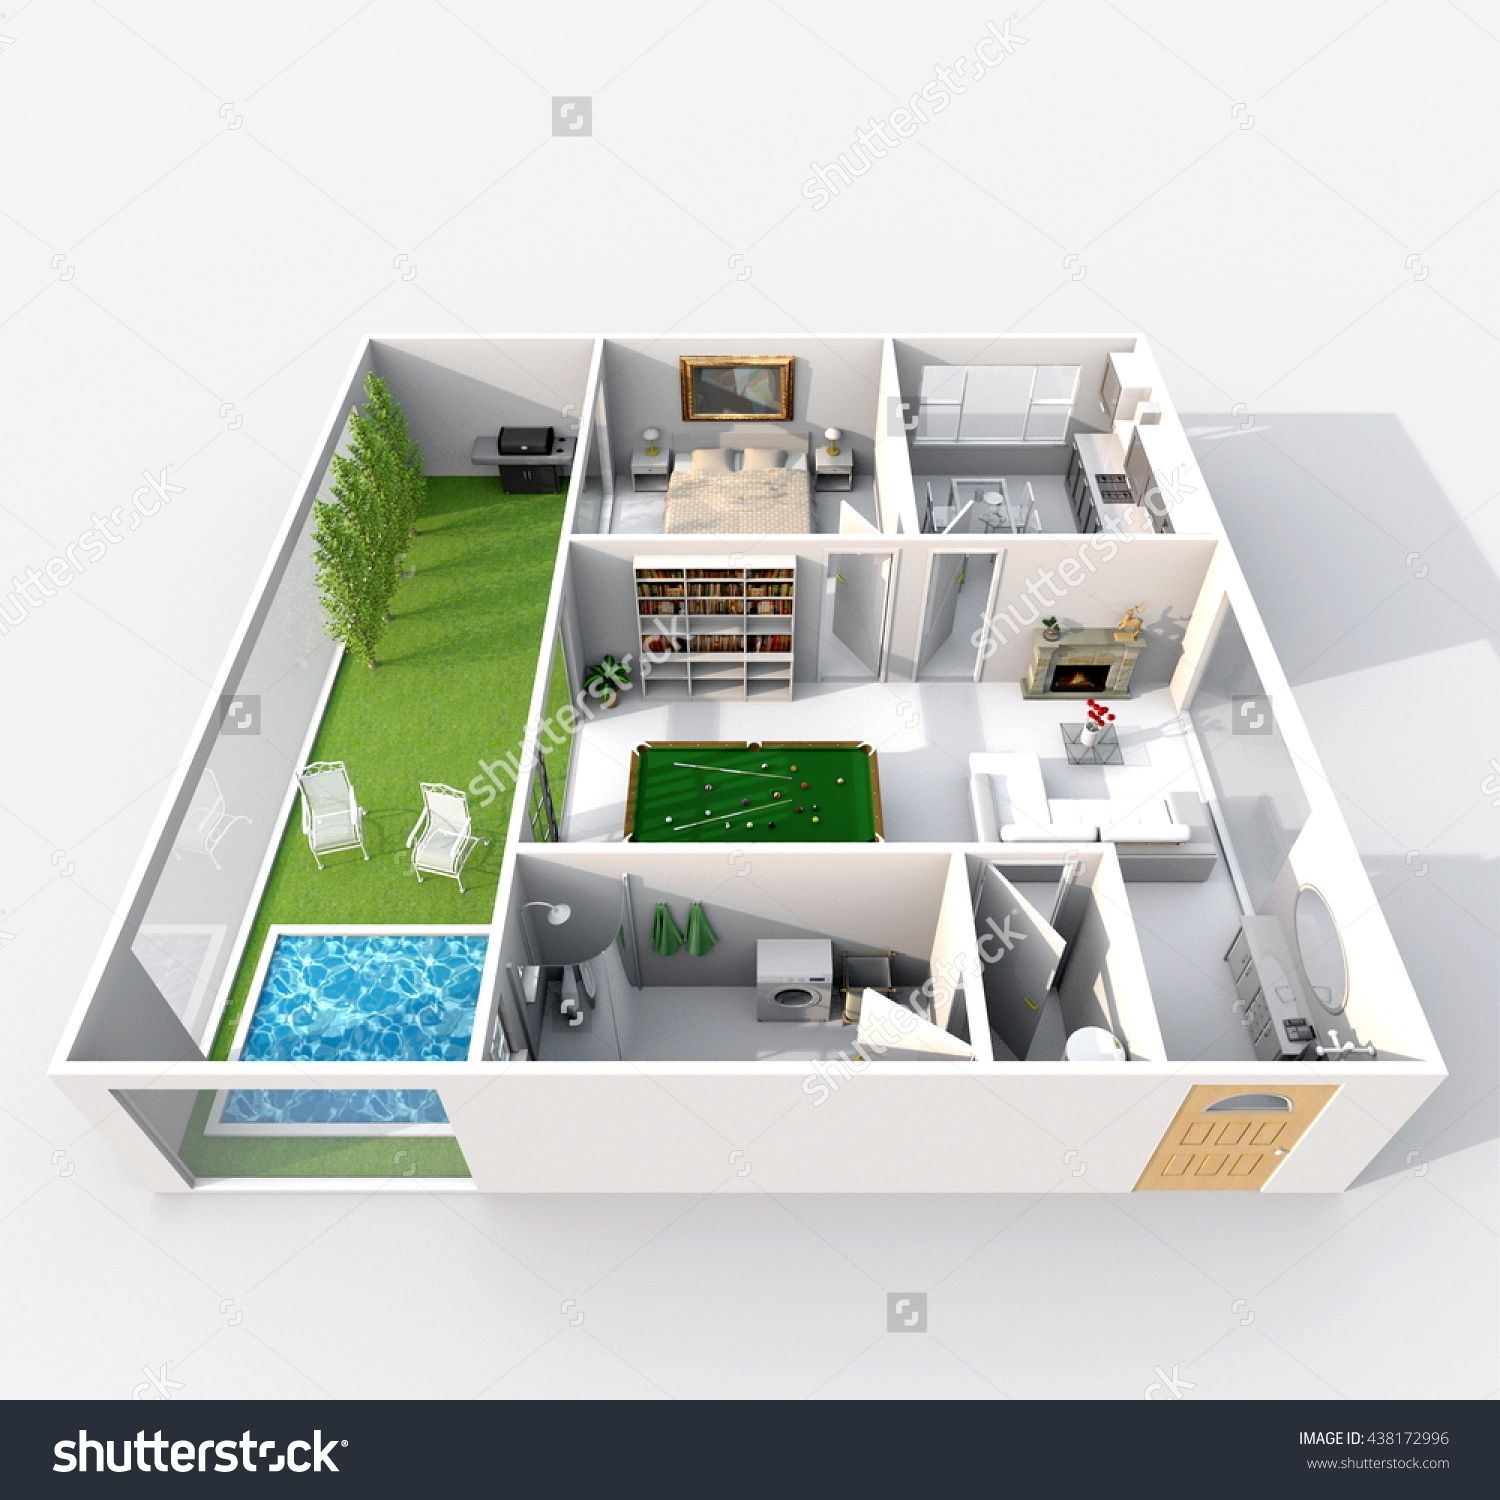 3d Interior Rendering Perspective View Of Furnished Home Apartment With Green Patio And Swimming Pool Kitchen Living RoomsBedroomHallWindowGreen